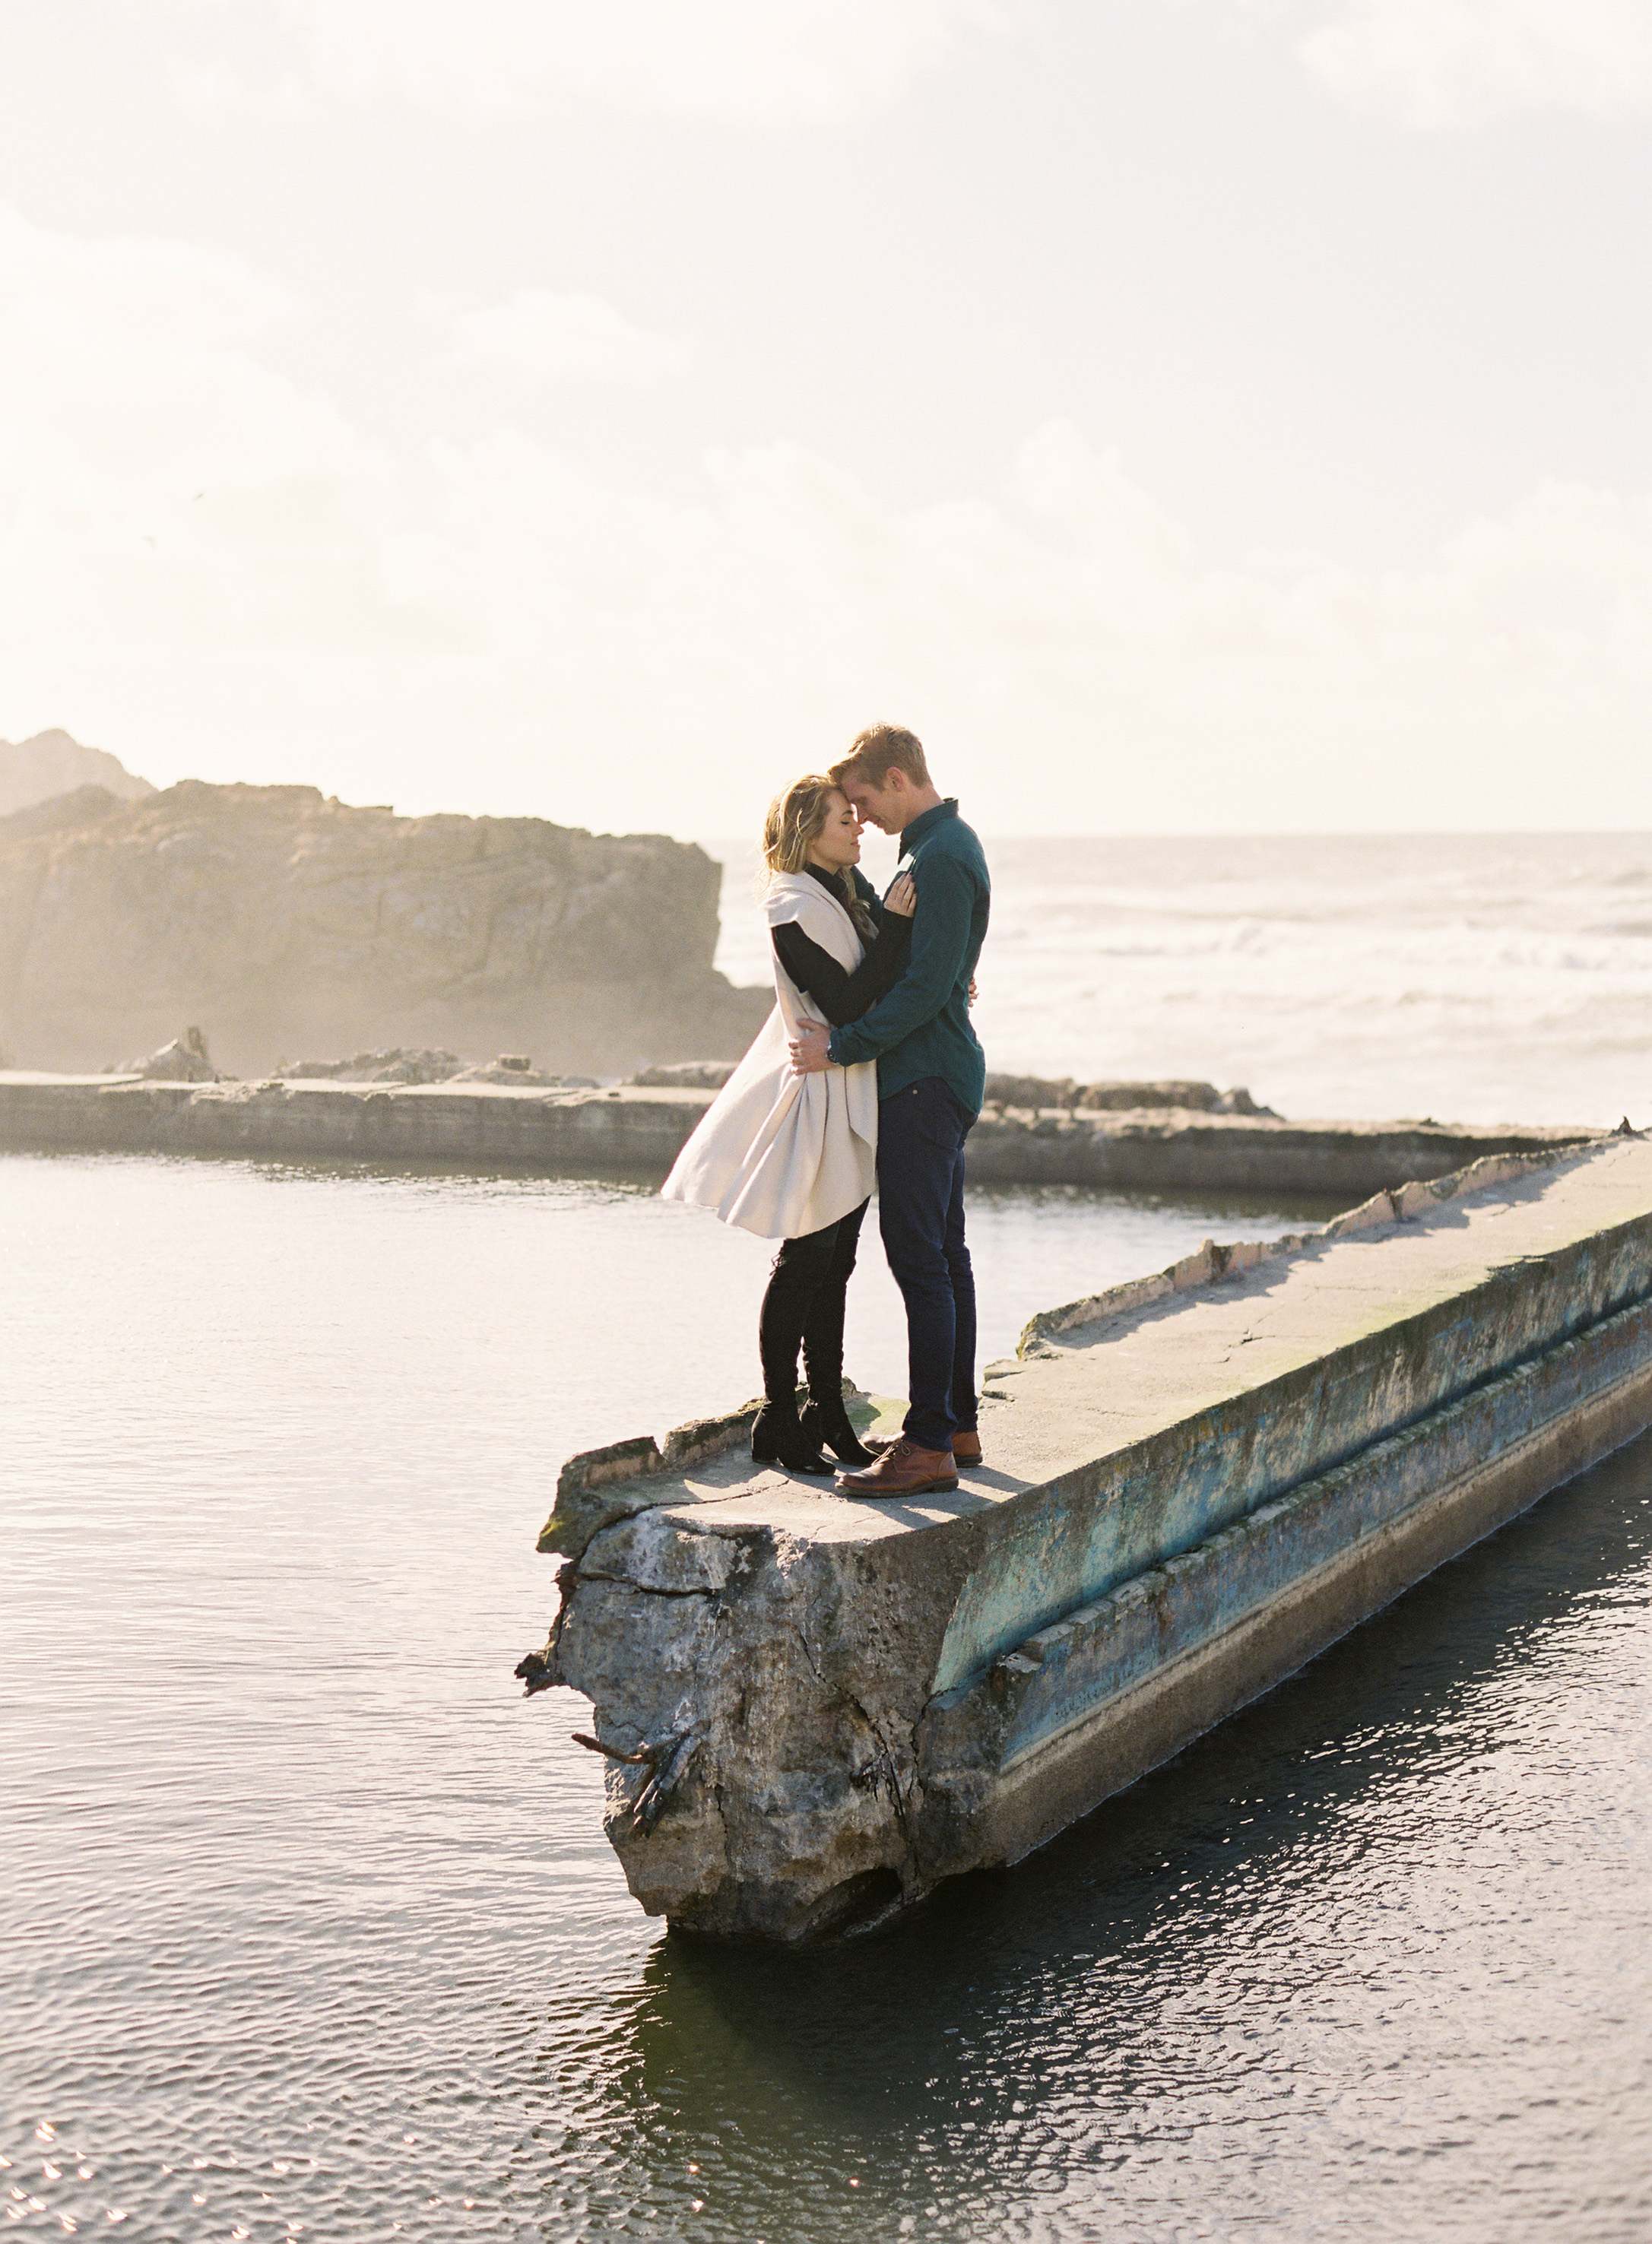 Jessica and Andrew Engagement-Carrie King Photographer-2.jpg